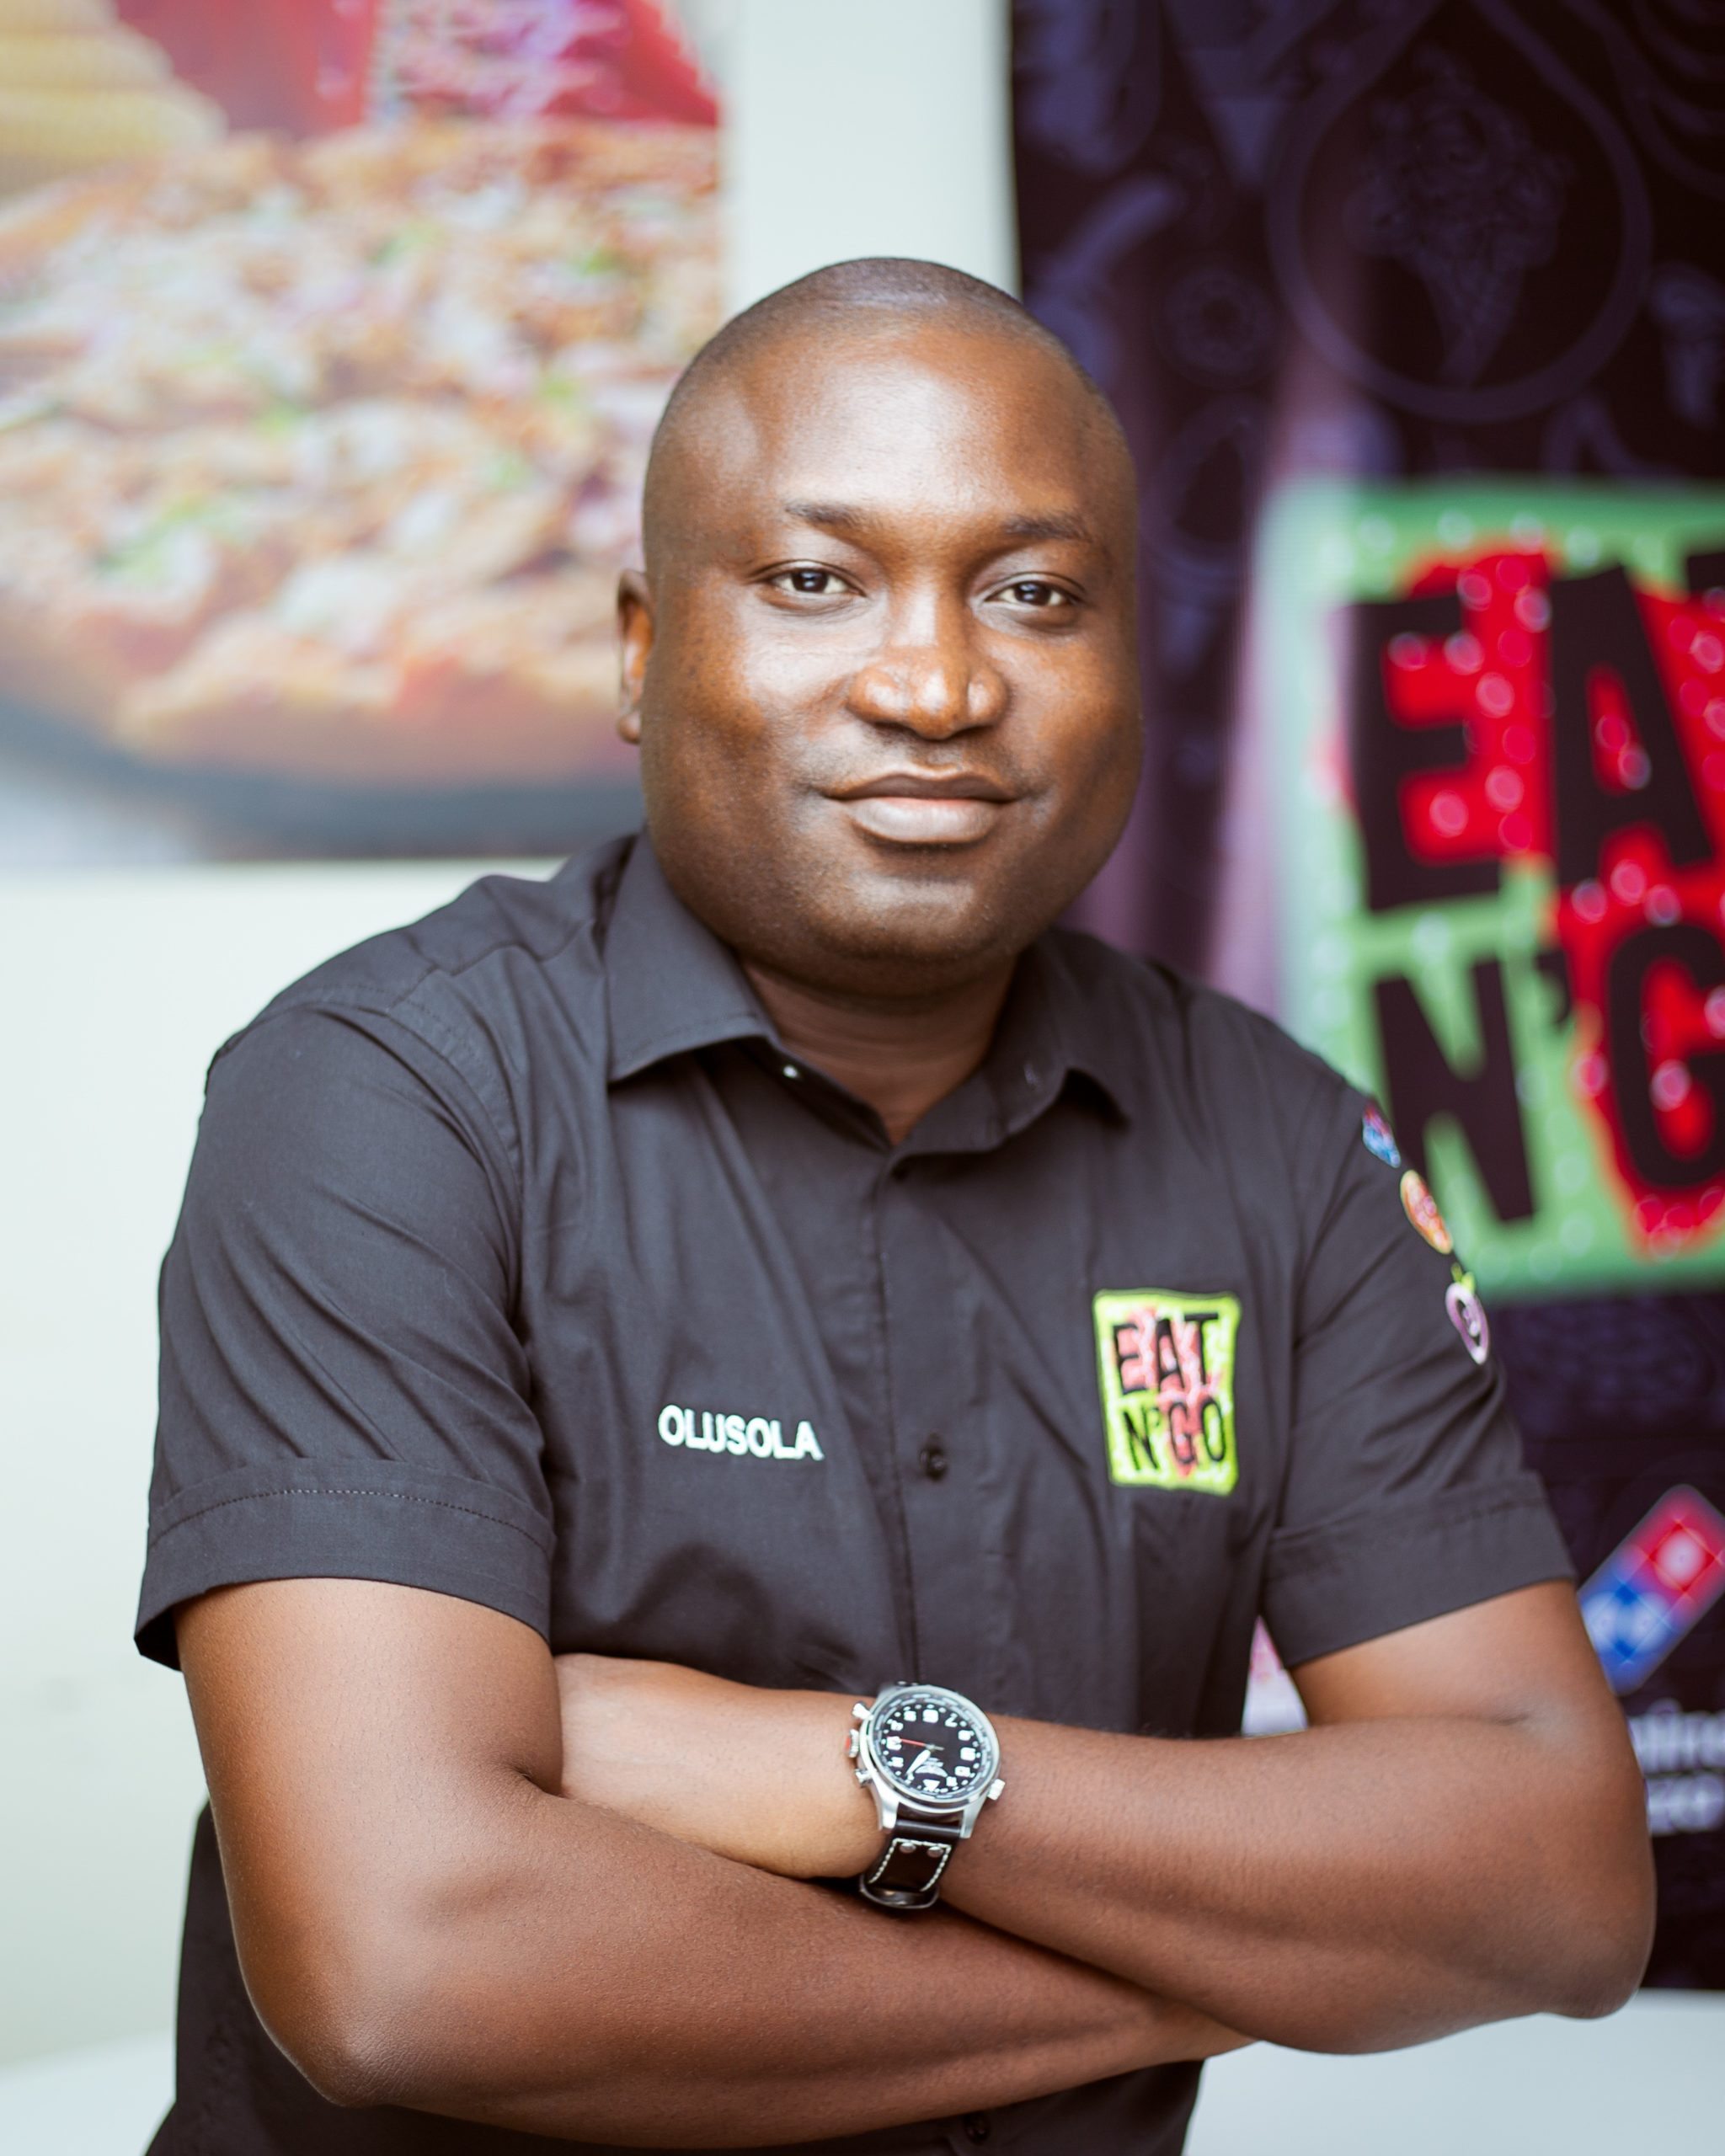 EAT'N'GO Shares Plans To Expand Operations To 14 Cities Across Nigeria